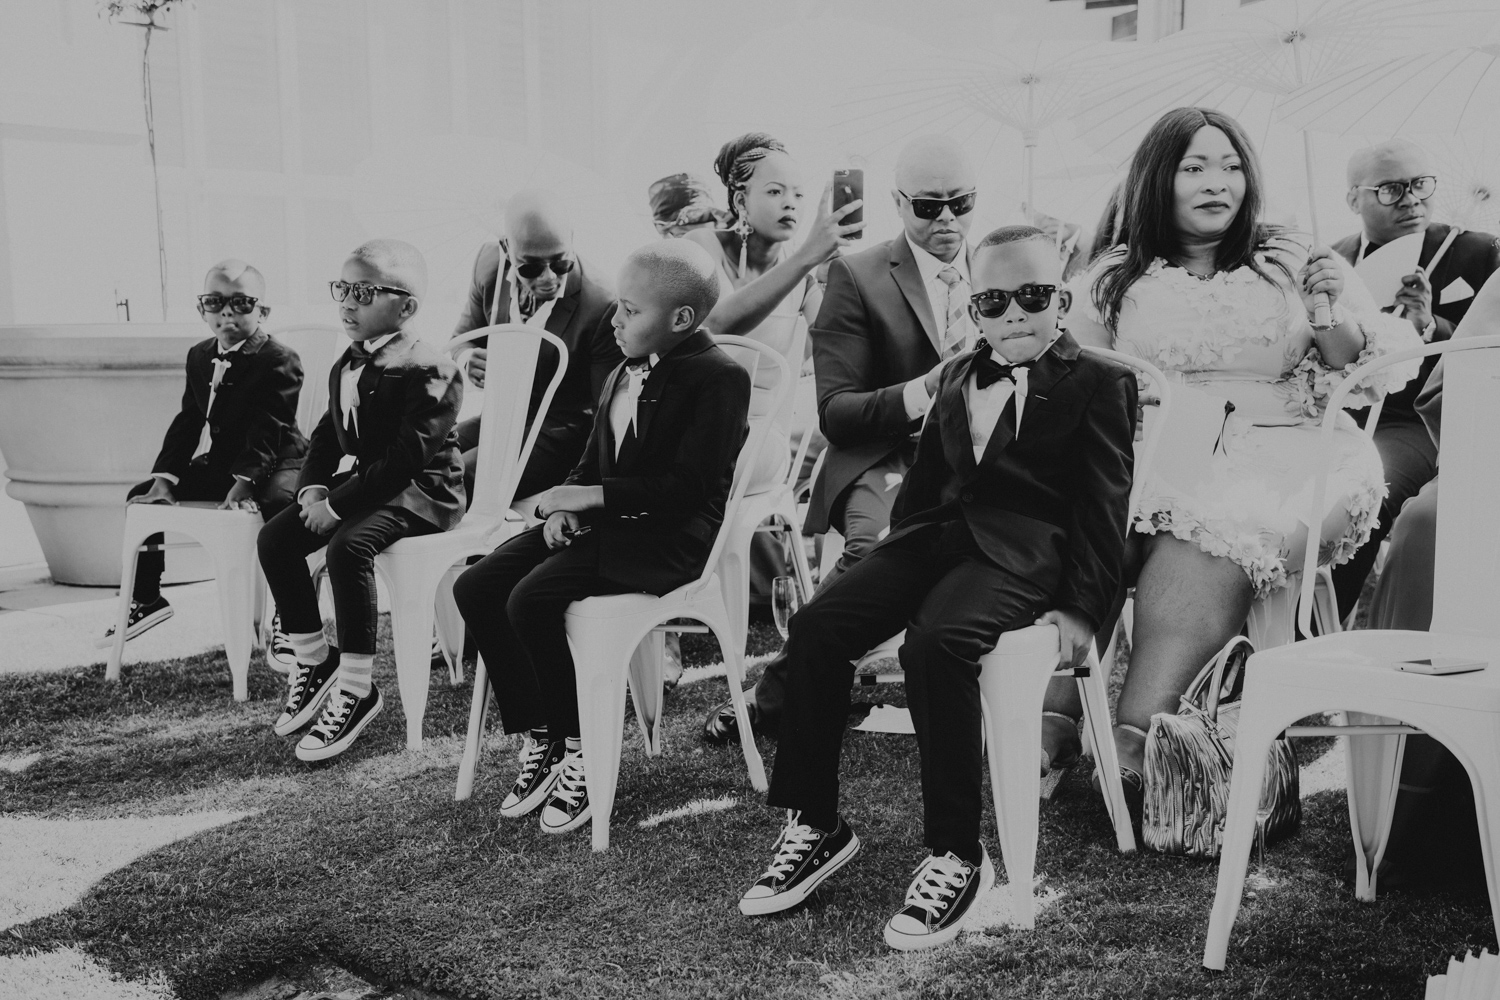 a black and white image taken by Vividblue of the boys in black suits siting in in the front row of the wedding ceremony at Val de Vie.